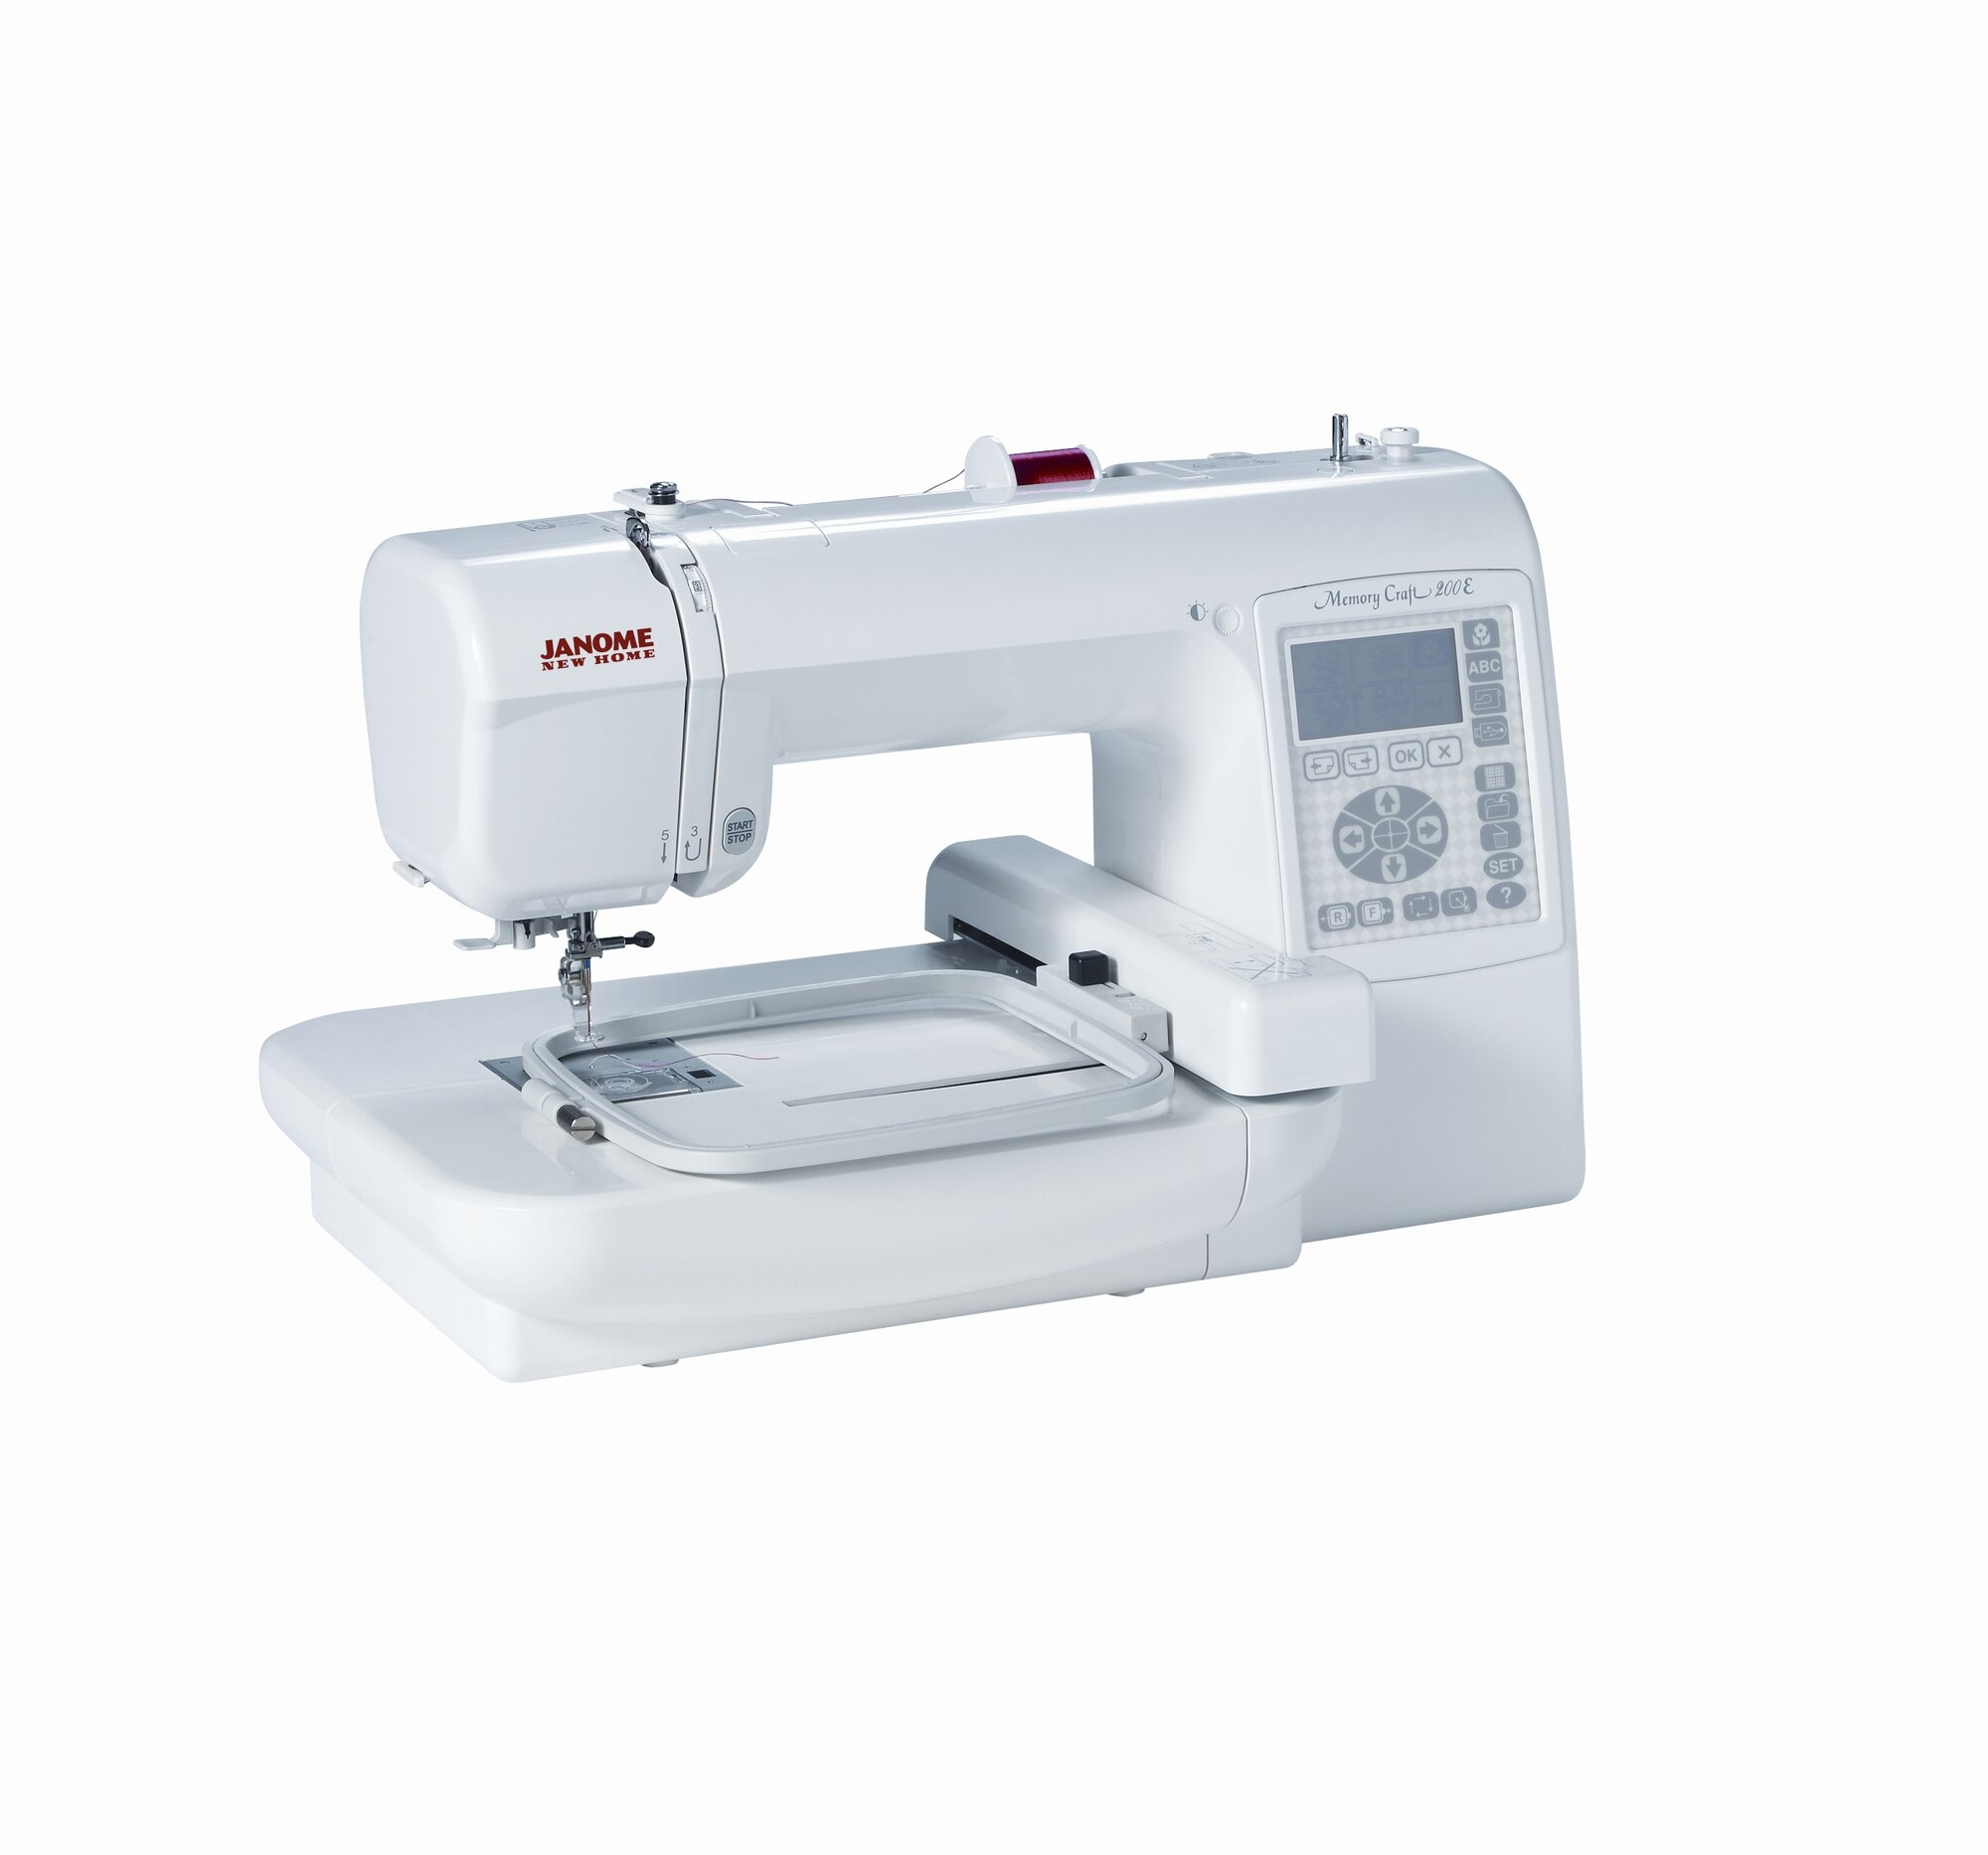 janome computerized memory craft embroidery machine. Black Bedroom Furniture Sets. Home Design Ideas